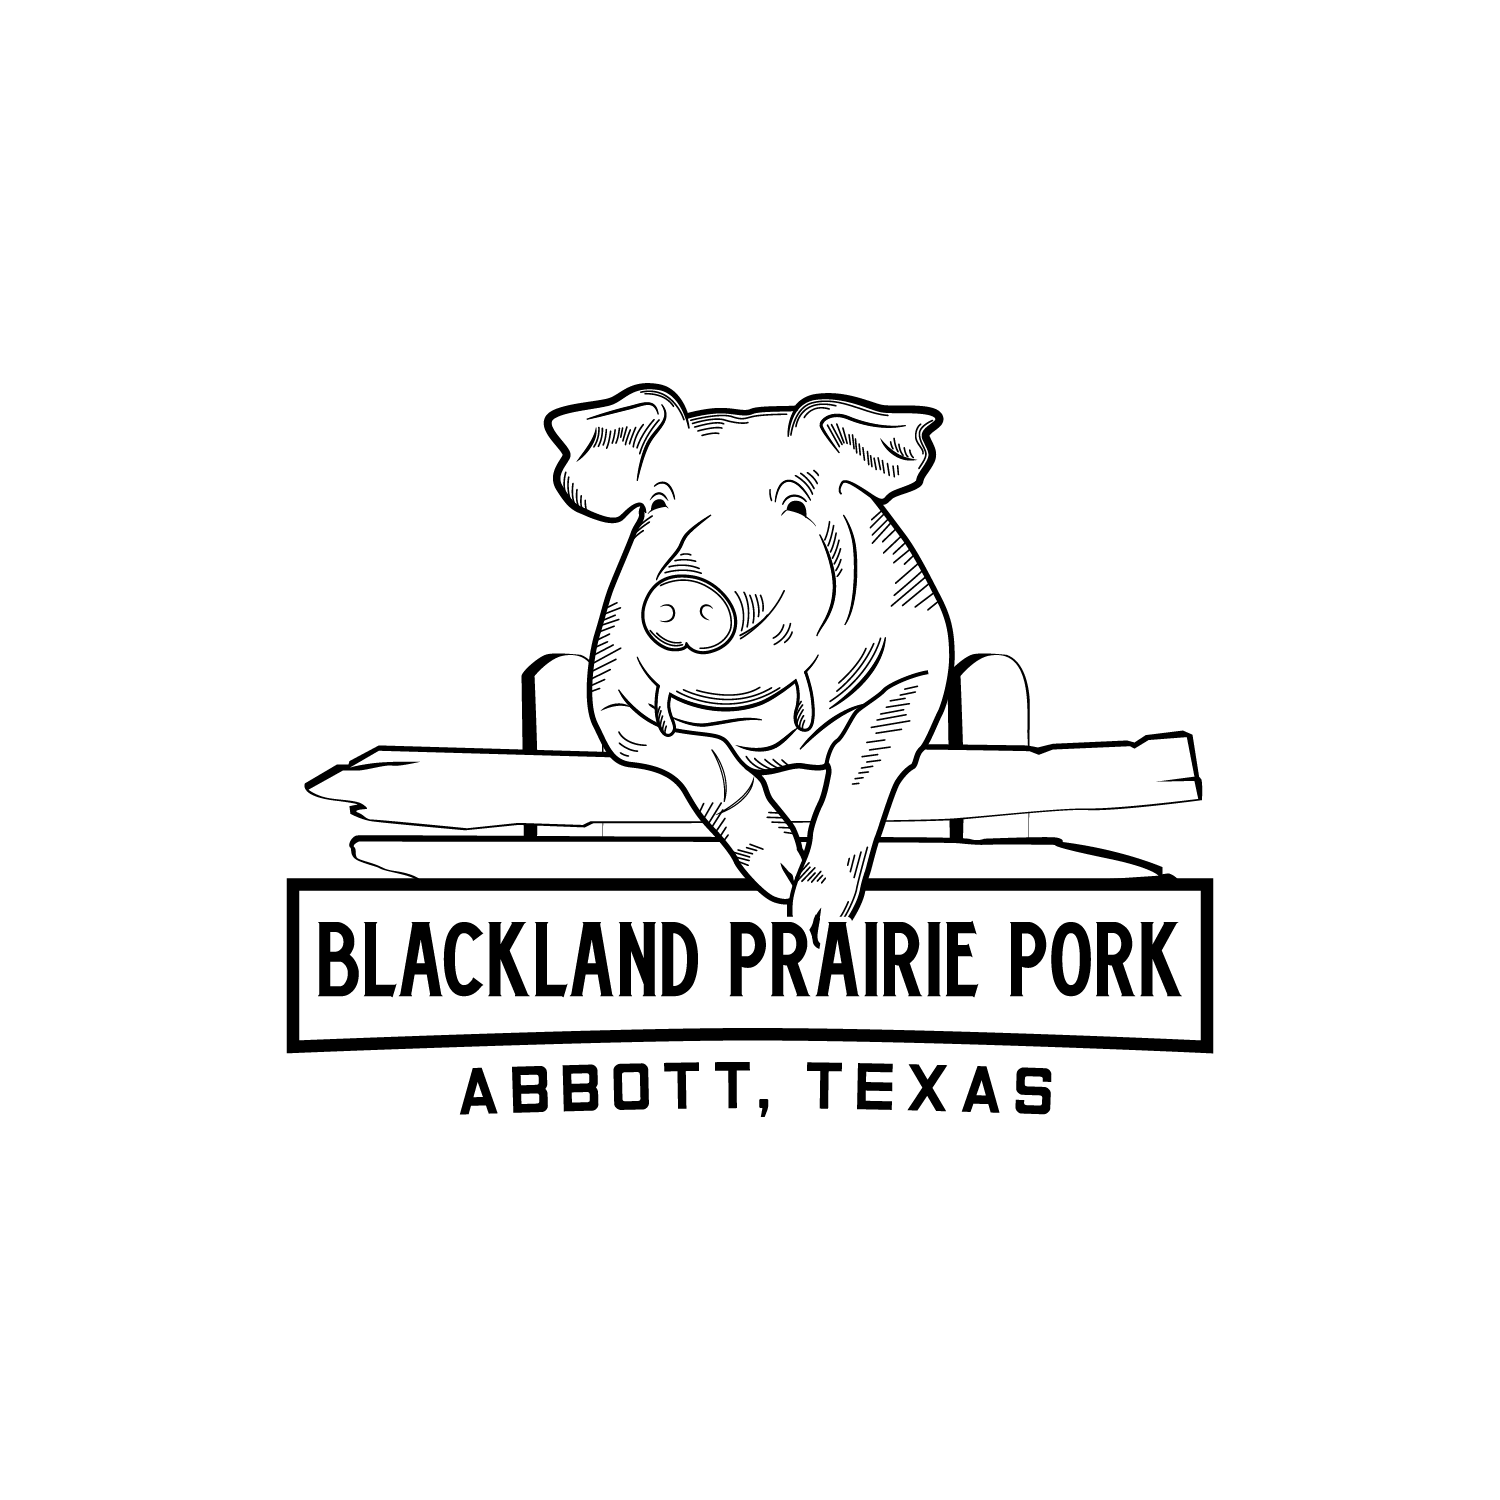 Blackland Prairie Pork